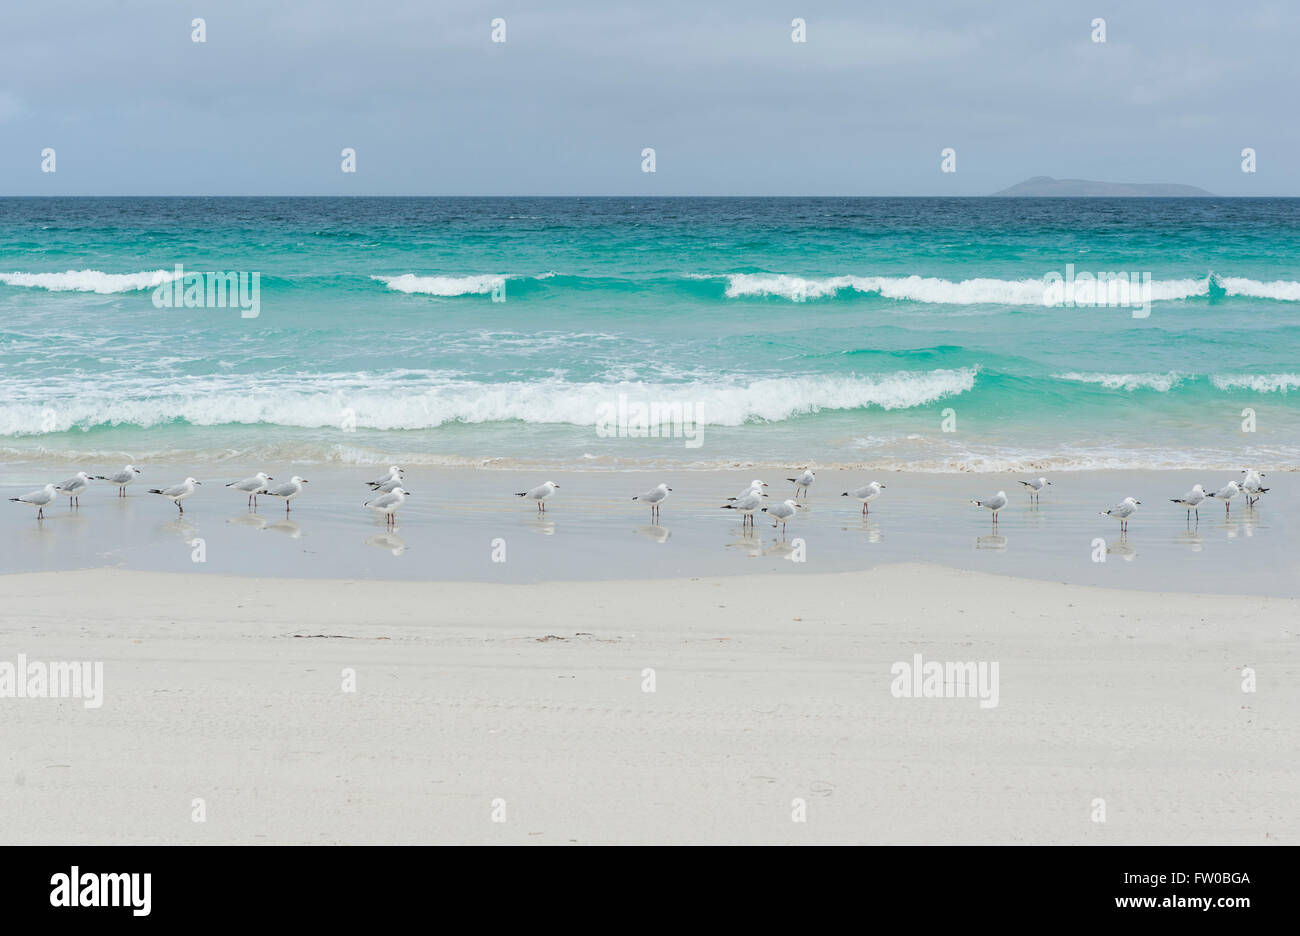 White beach and turquoise waters at Wylie Bay, Esperance, Western Australia Stock Photo